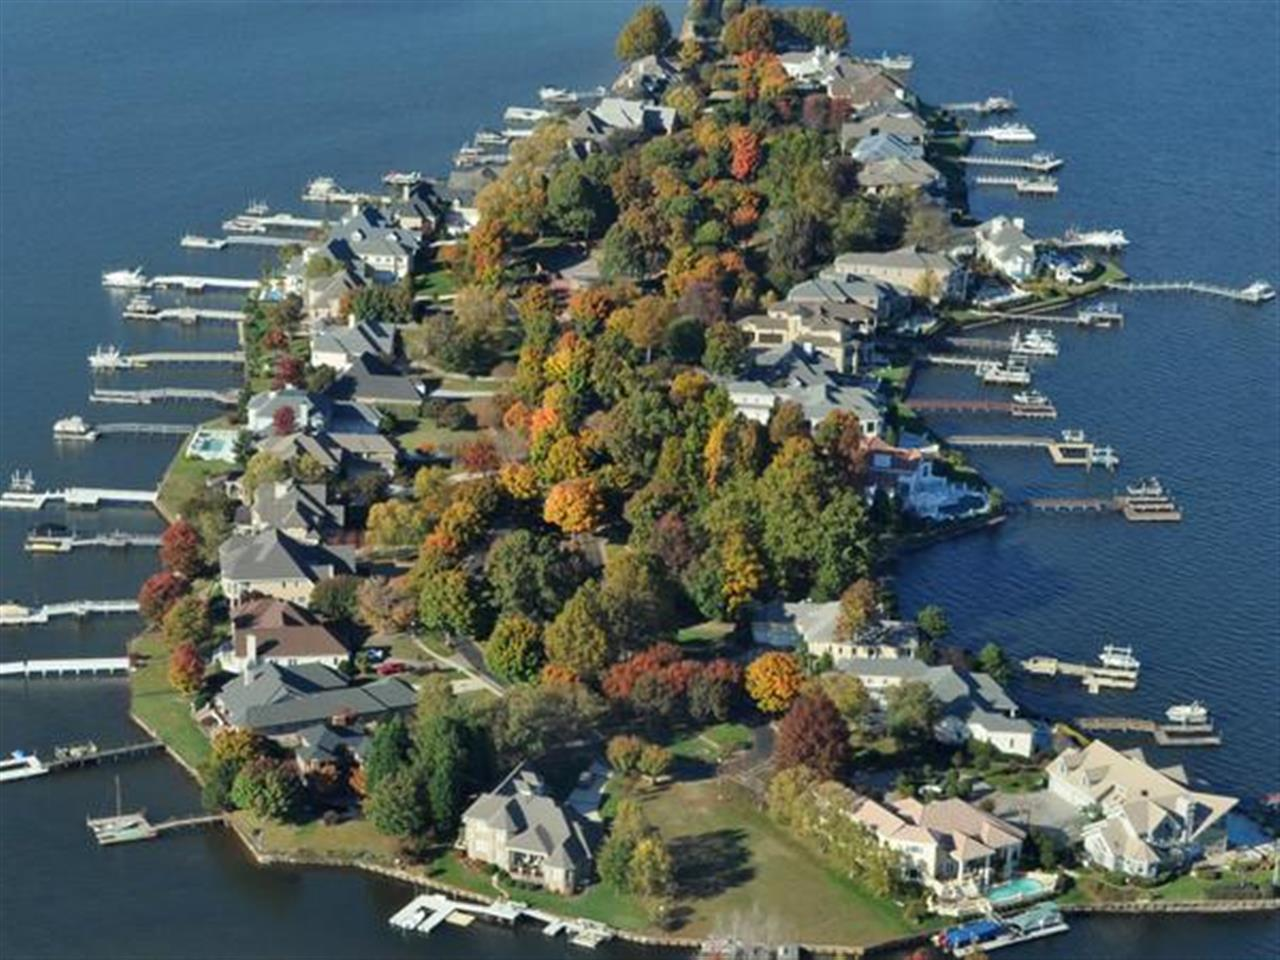 My favorite out of my aerial works. #GovernorsIsland #LakeNorman #Denver #NC #LuxuryHomes #Islands #LeadingRElocal